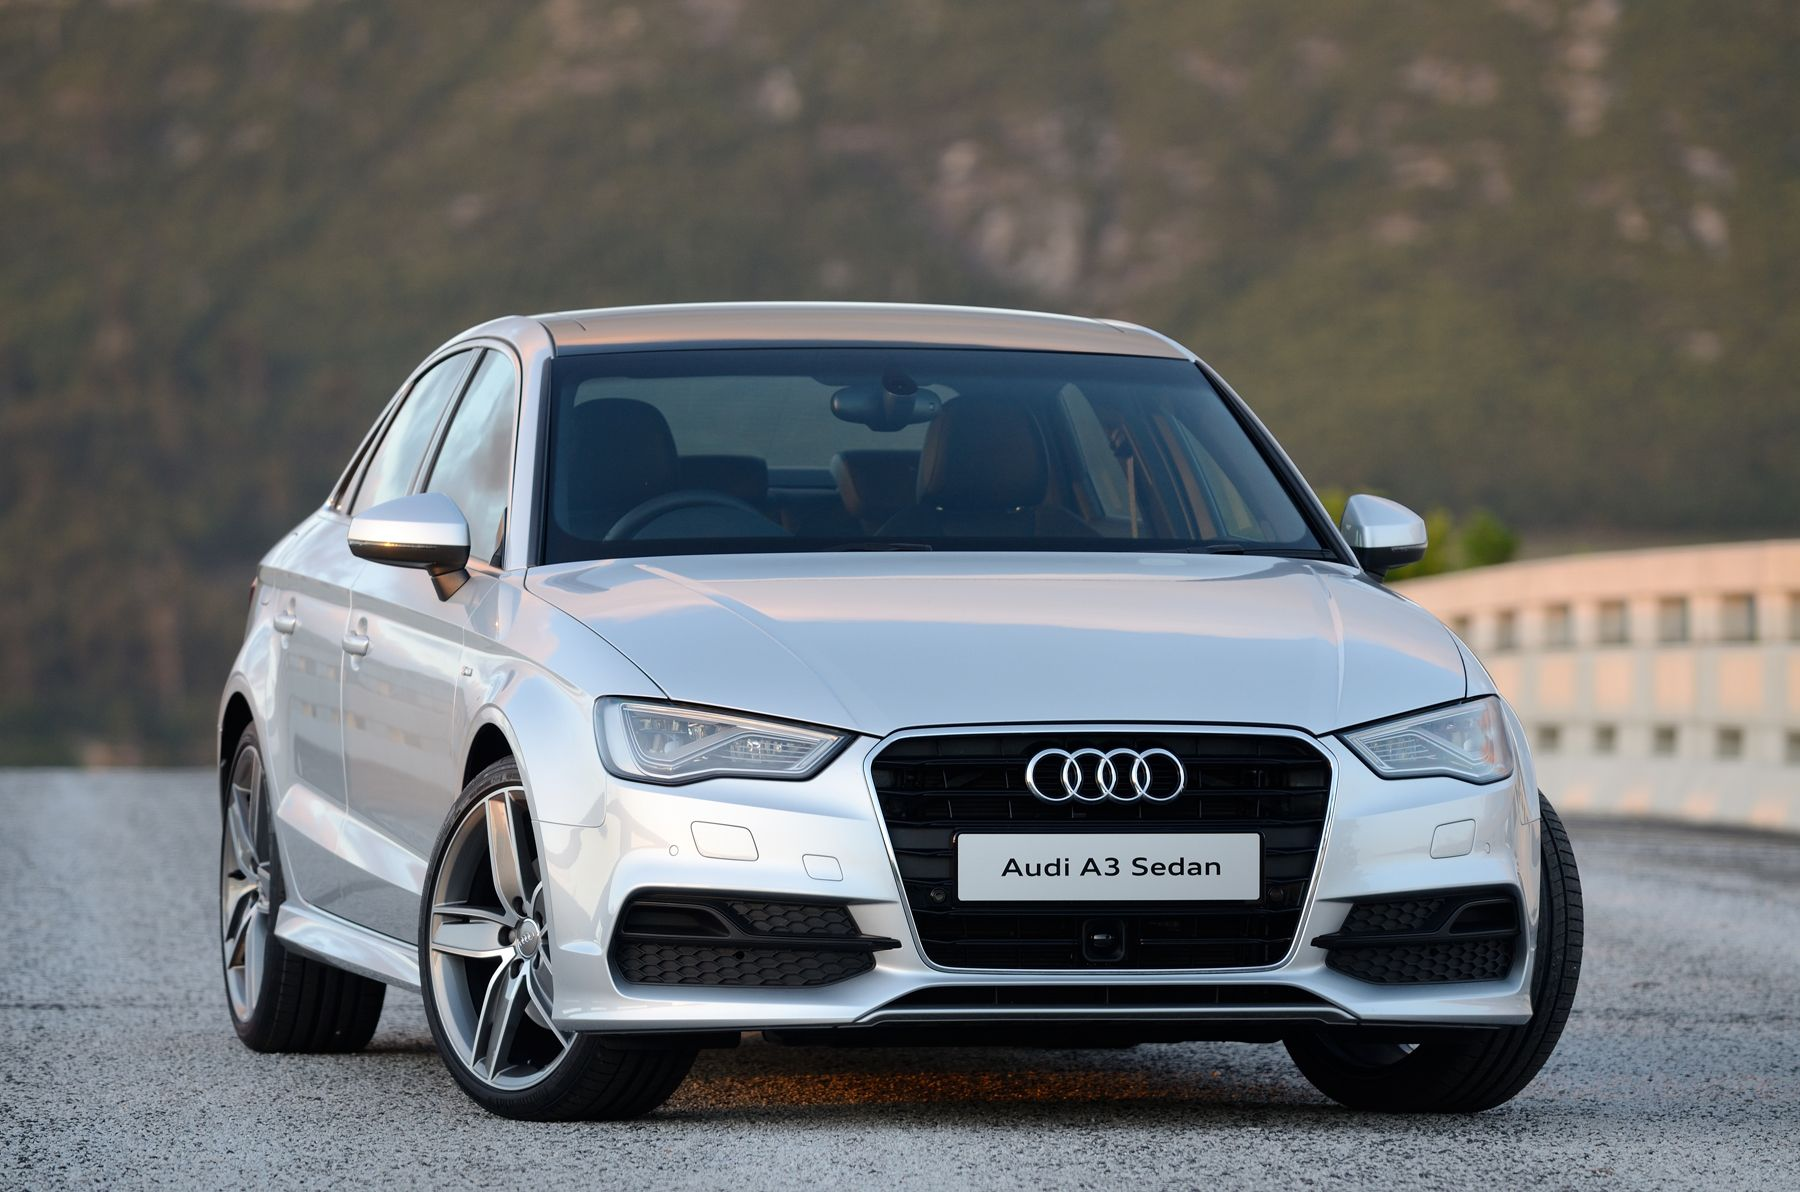 Audi A3 Sedan 1.4 TFSI S-Tronic (2014): New Car Review